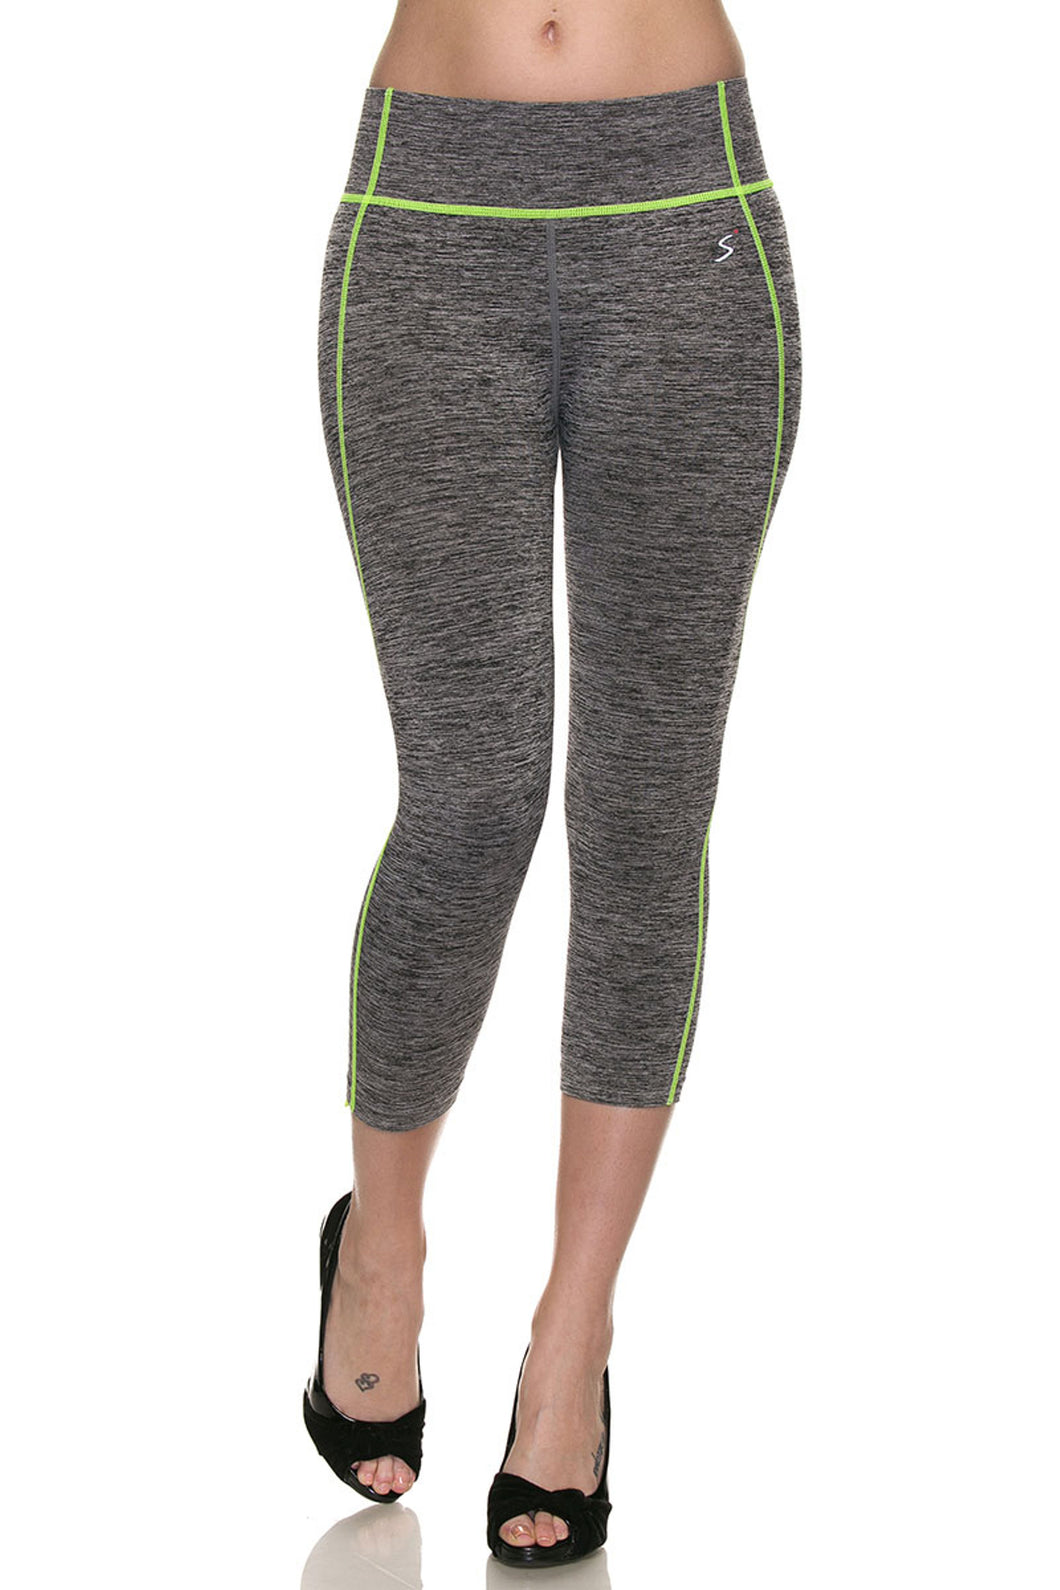 Seamless Active Wear Space Dye Color Stitch Leggings, 2X-3X - SE Collegiate Gifts